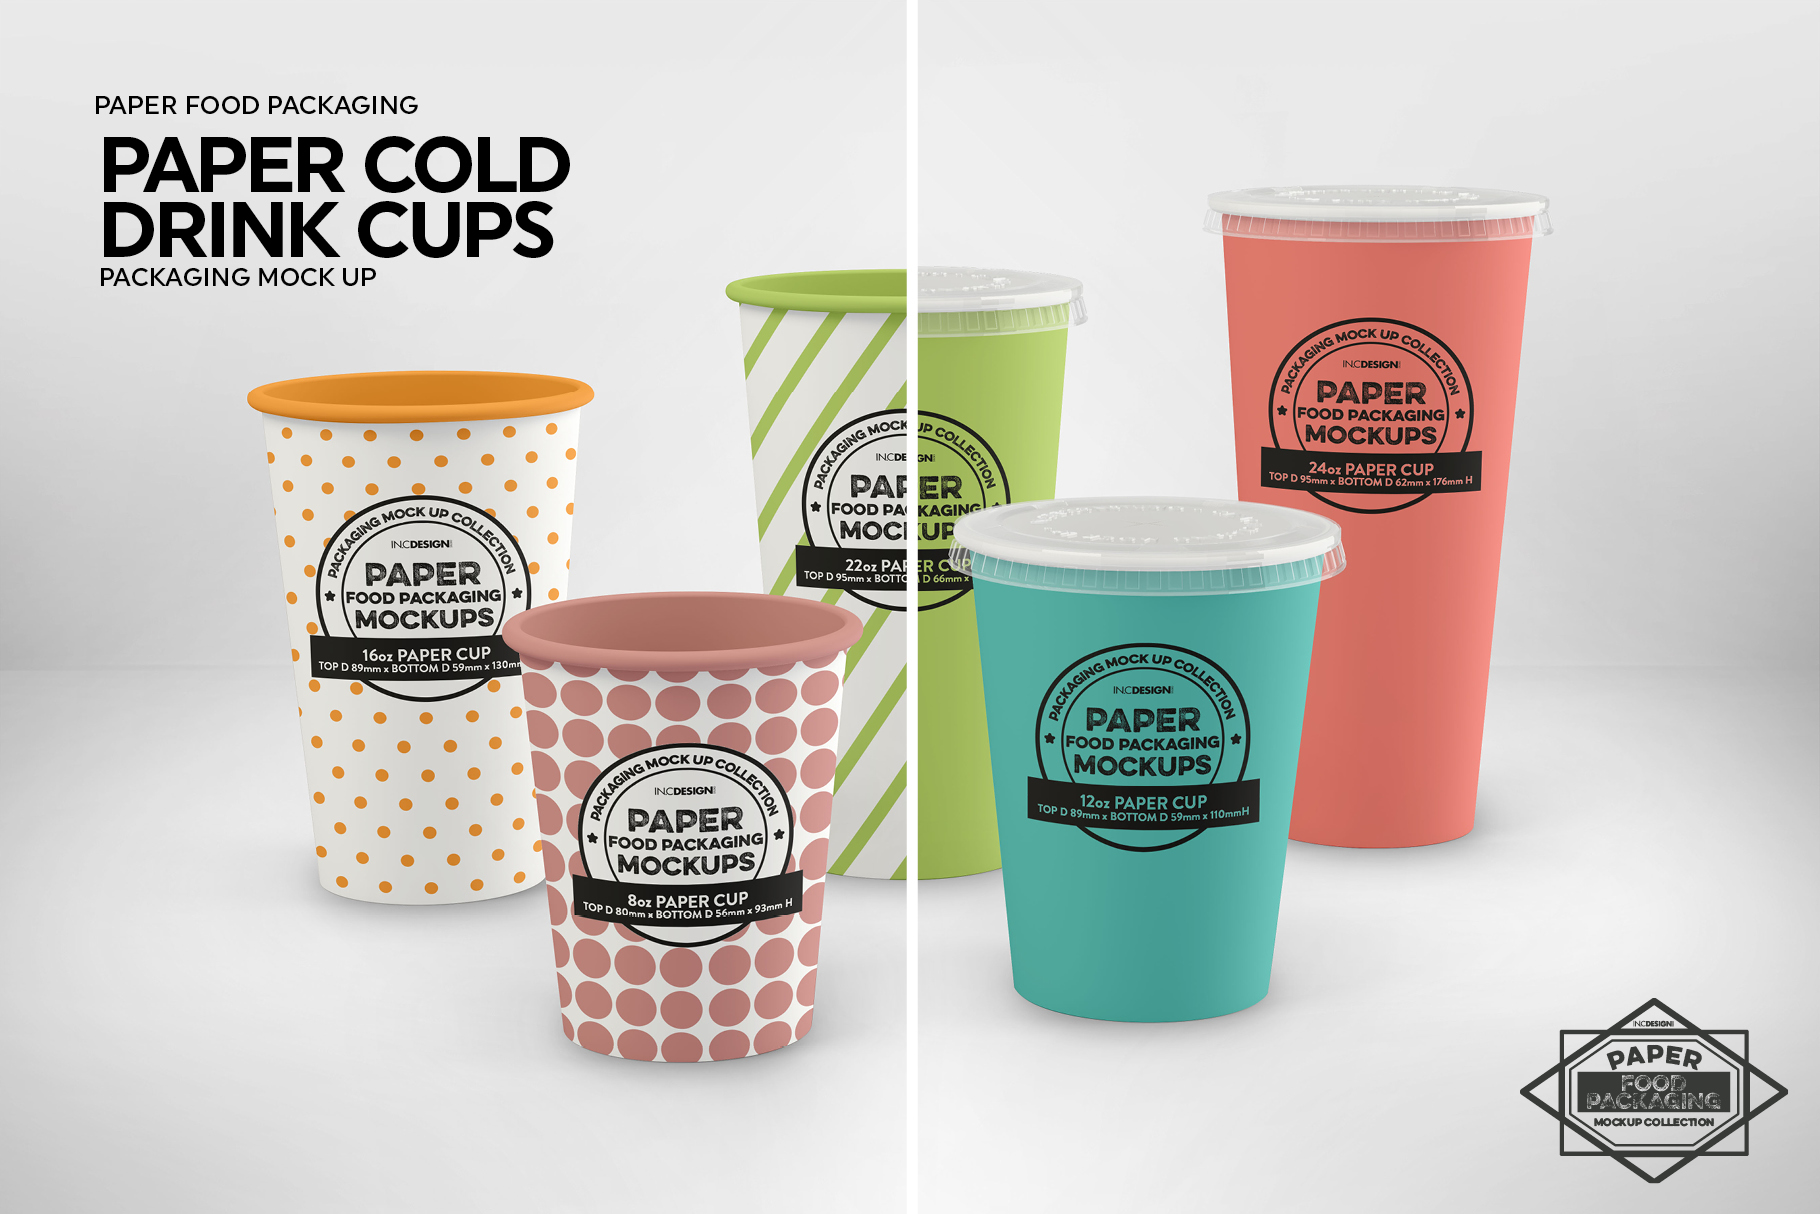 Paper Drink Cups Packaging Mockup example image 4